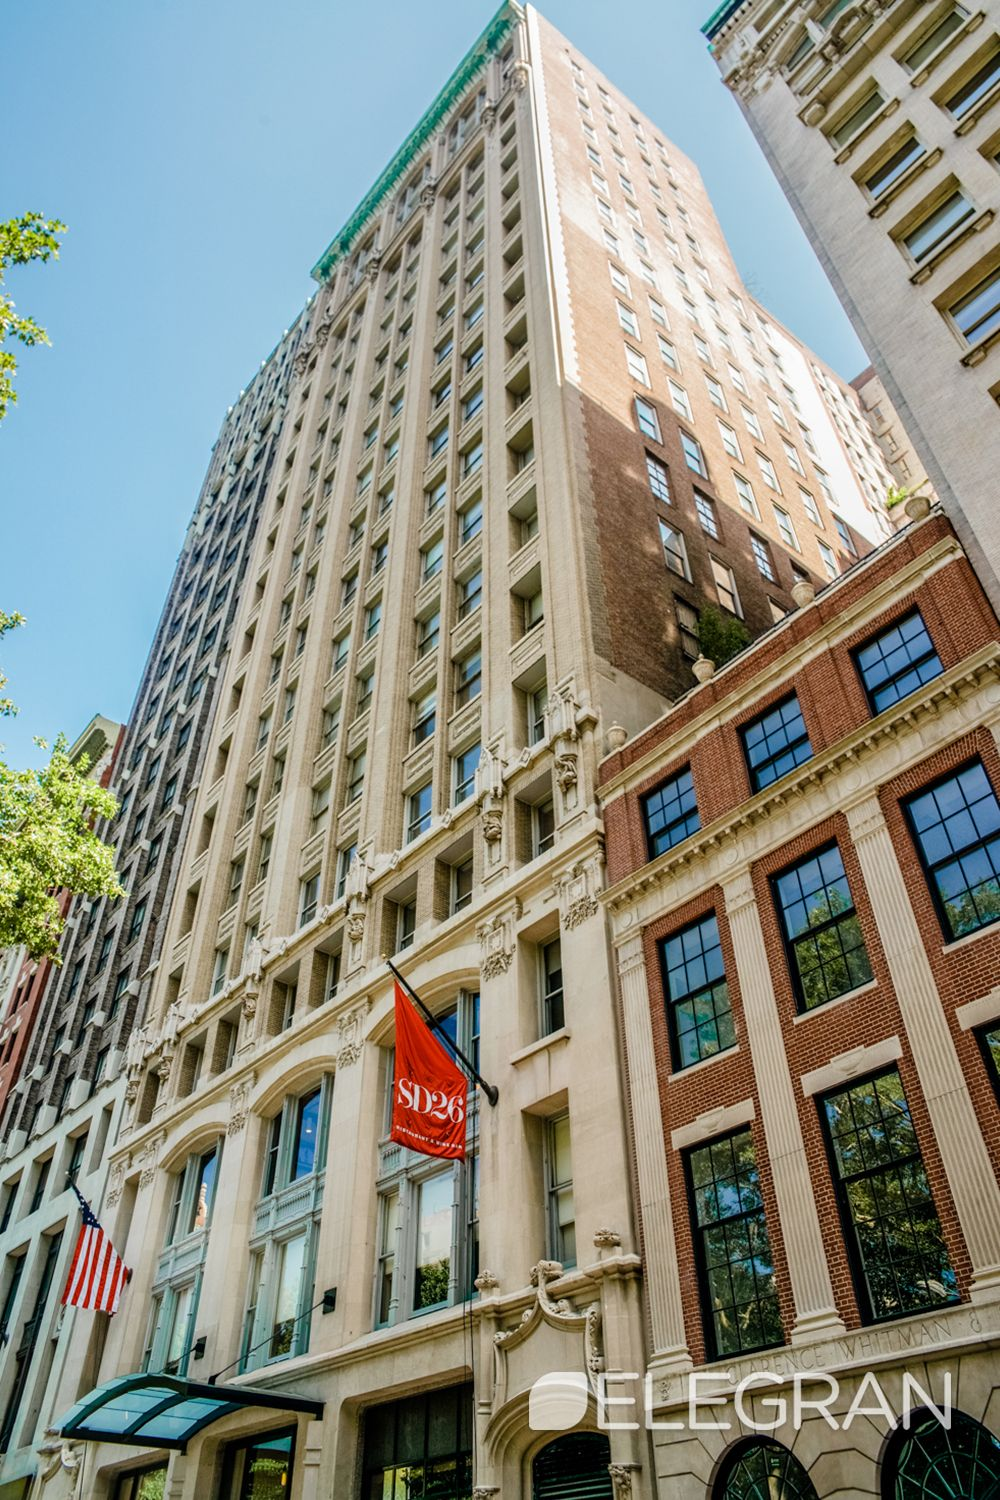 15 madison square north is one of the few prewar